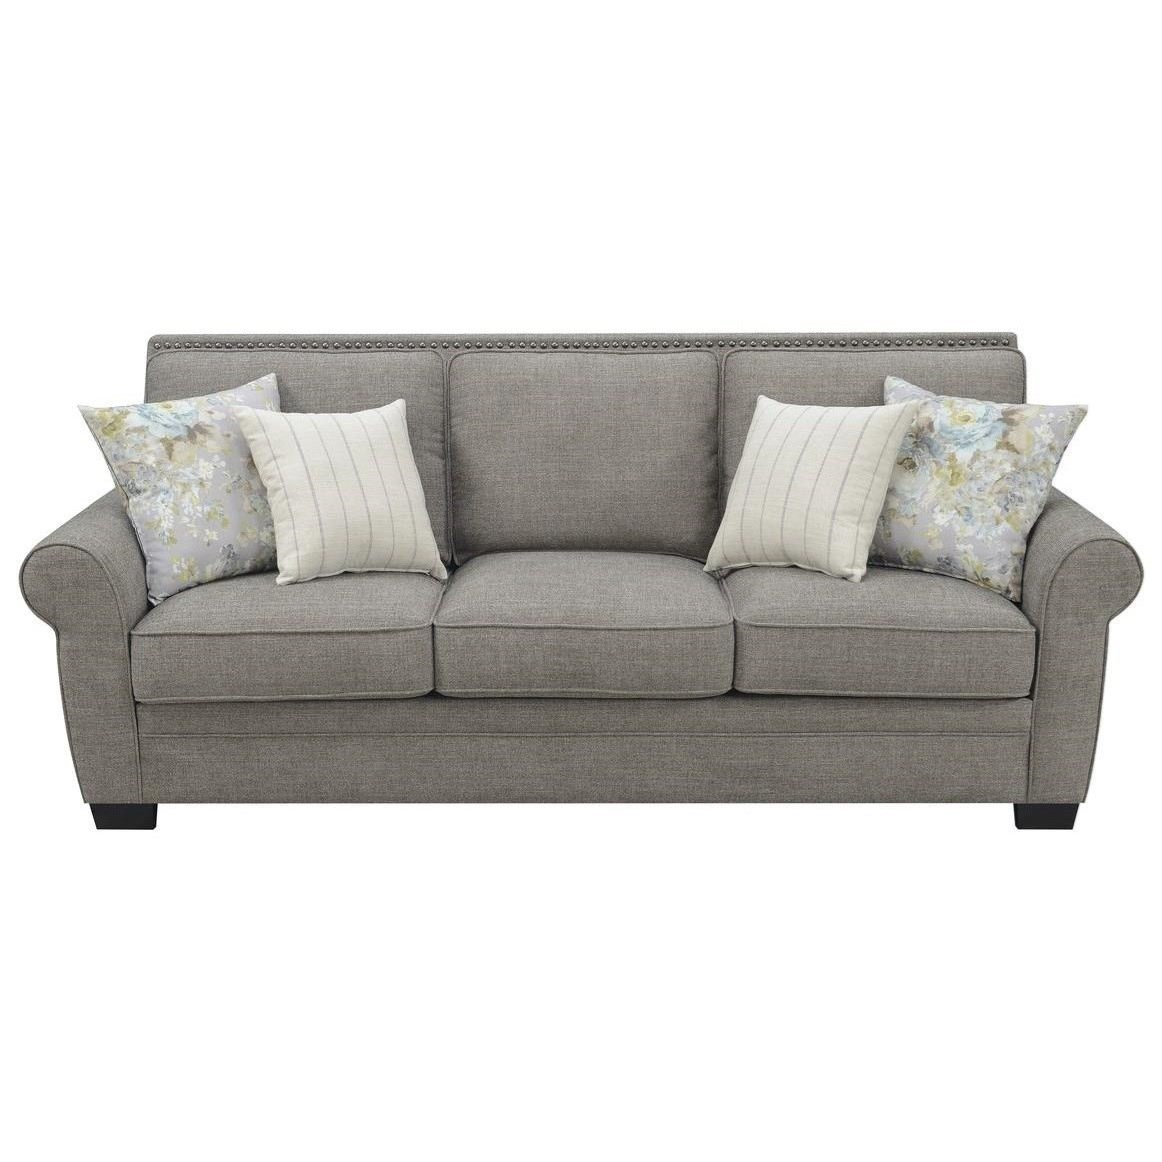 Brookemonte Sofa W/4 Accent Pillows by Emerald at Northeast Factory Direct